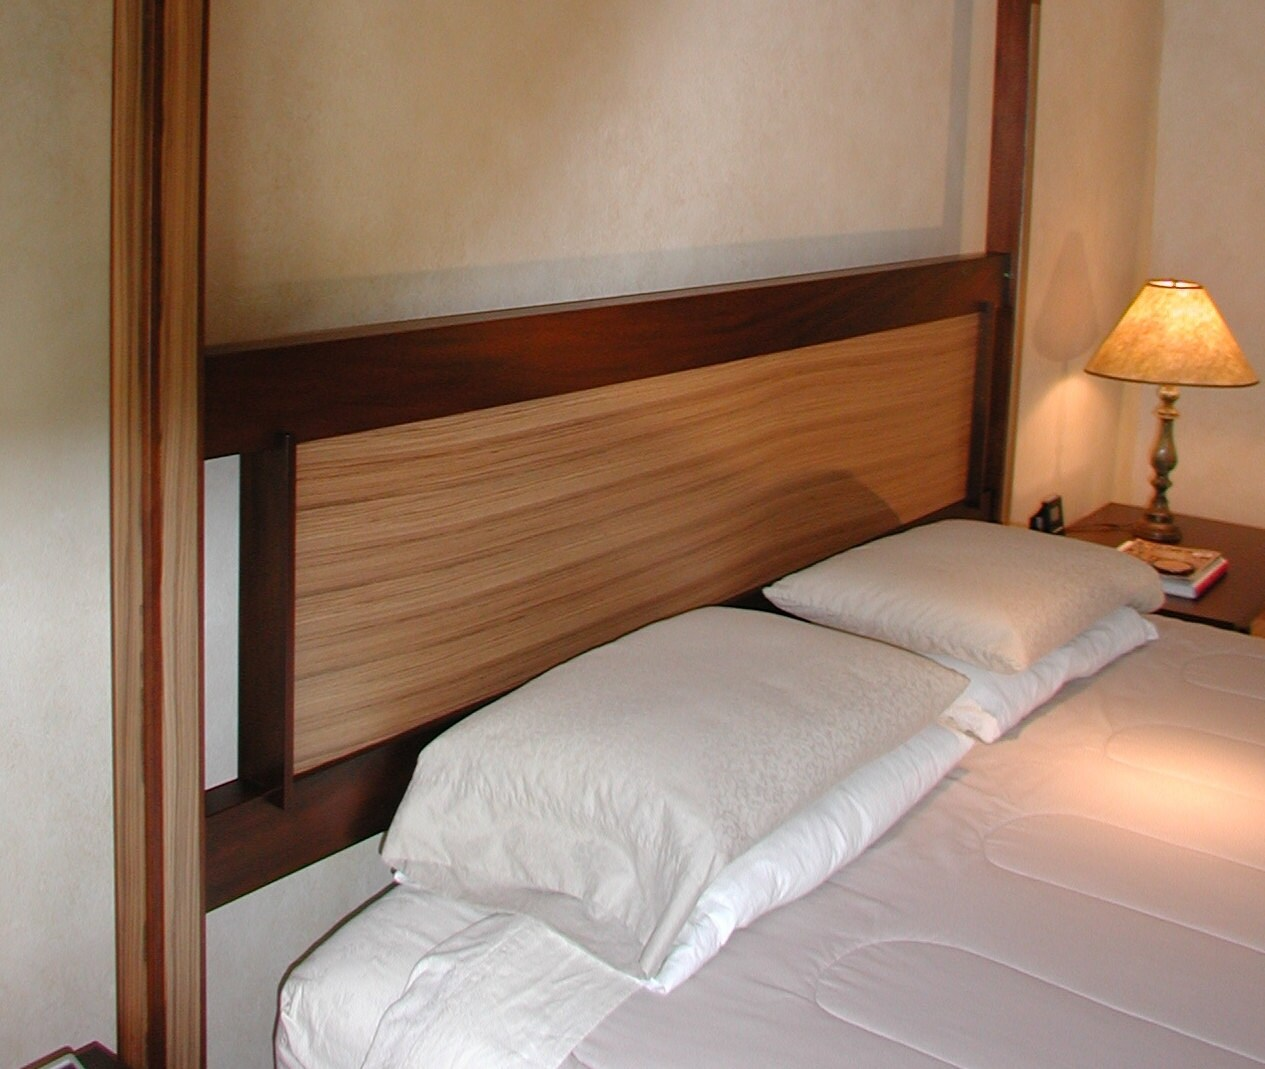 Ryatta Bed frame king or queen size bed frame (woodworking plans ...